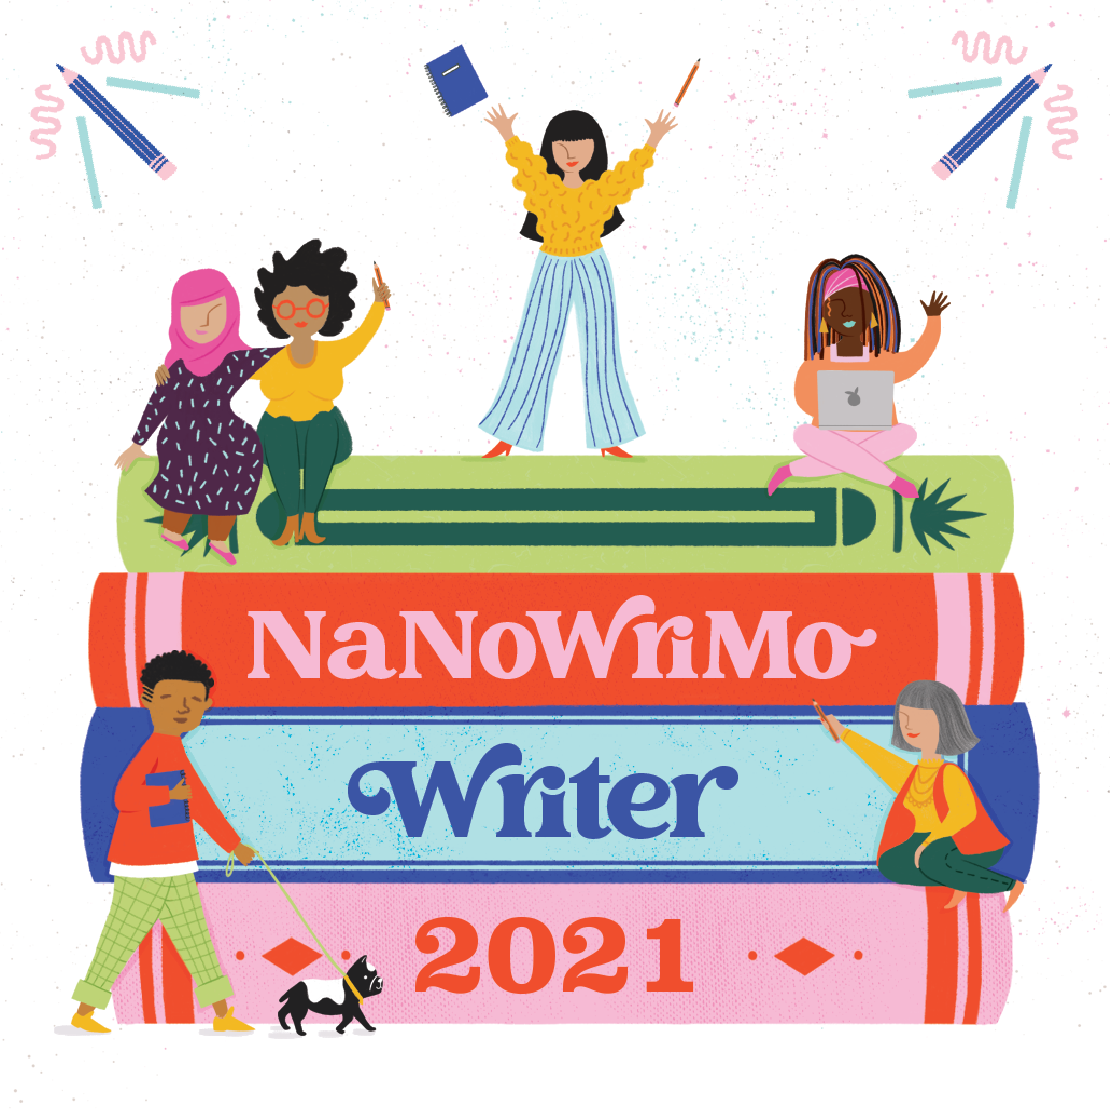 Should I NaNoWriMo This Year?